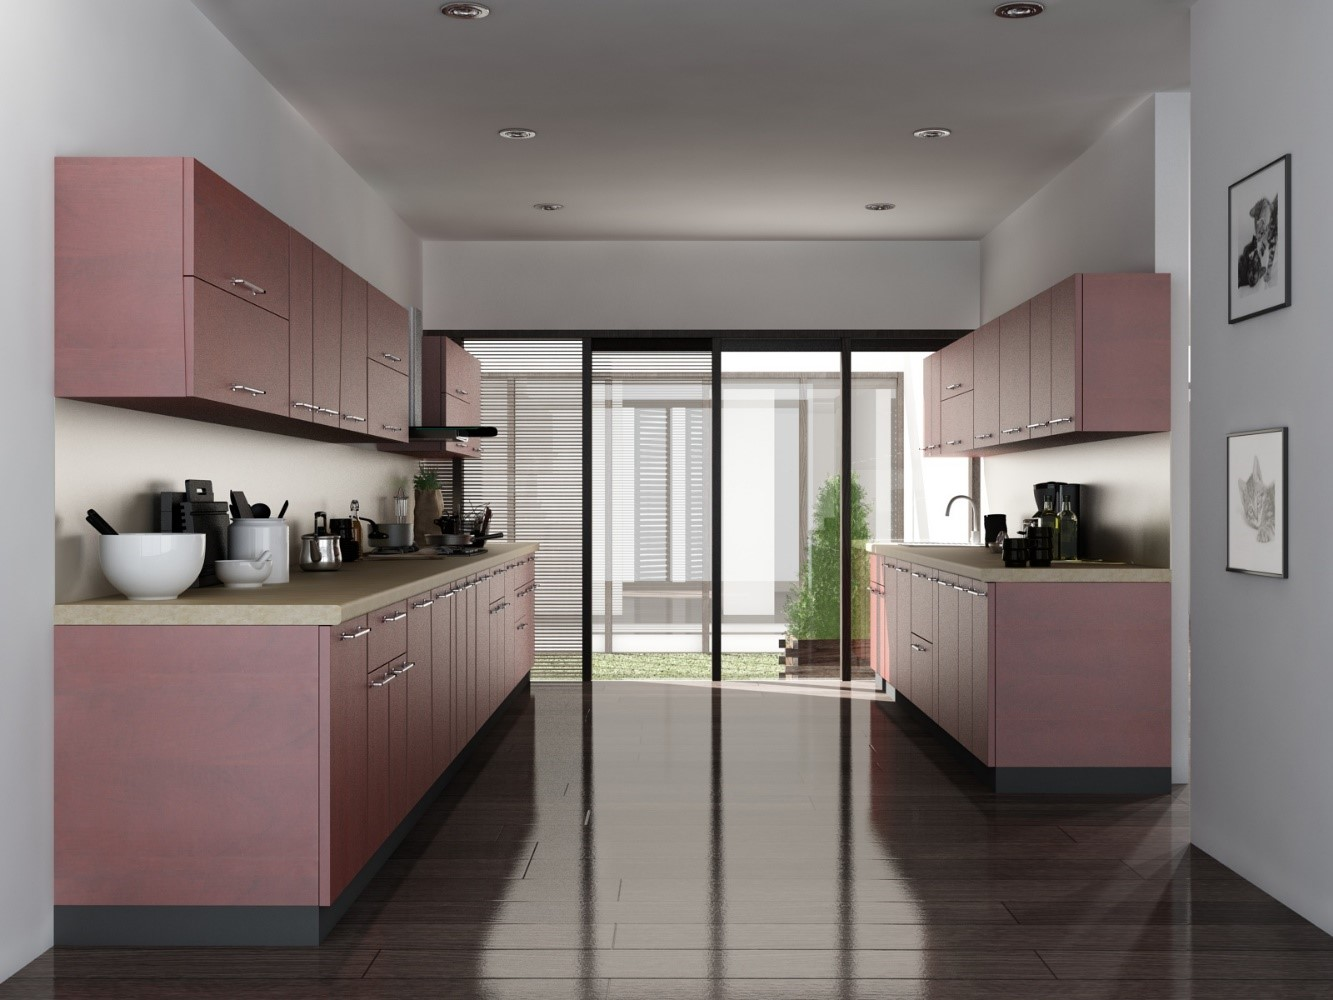 Types of Modular Kitchen  Advantages and Disadvantages